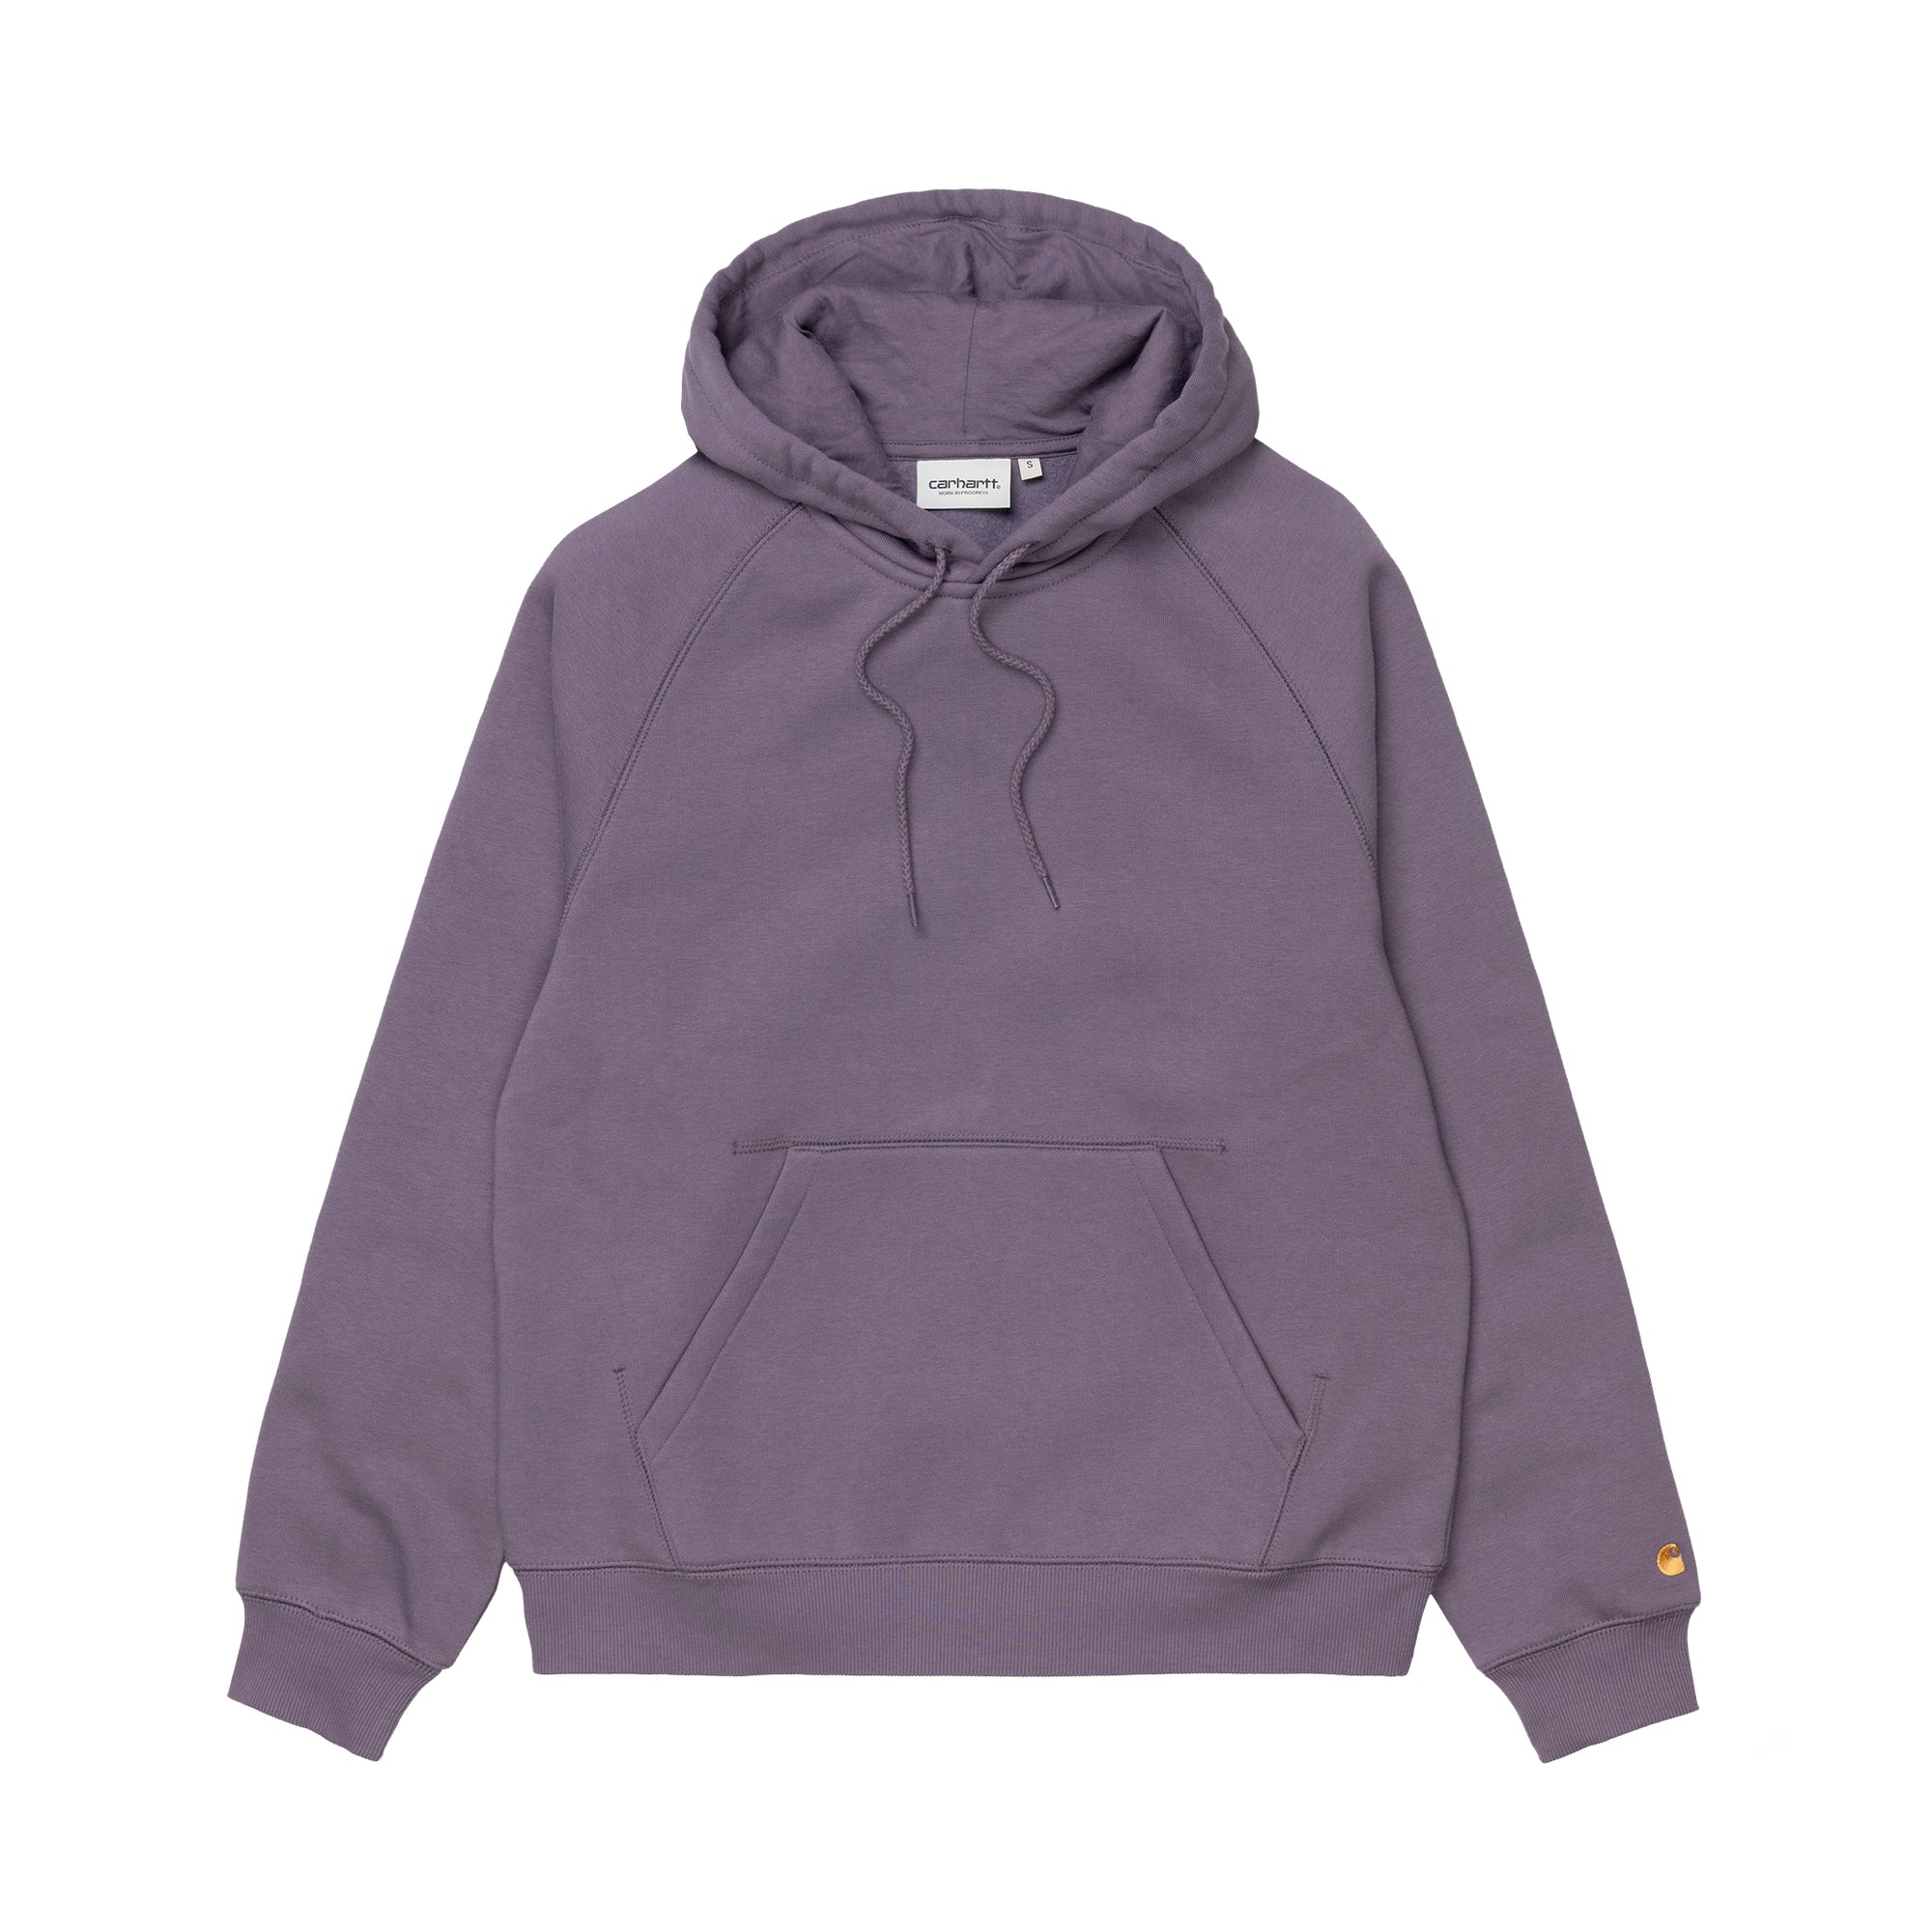 Carhartt WIP Womens Hooded Chase Sweat: Provence / Gold - The Union Project